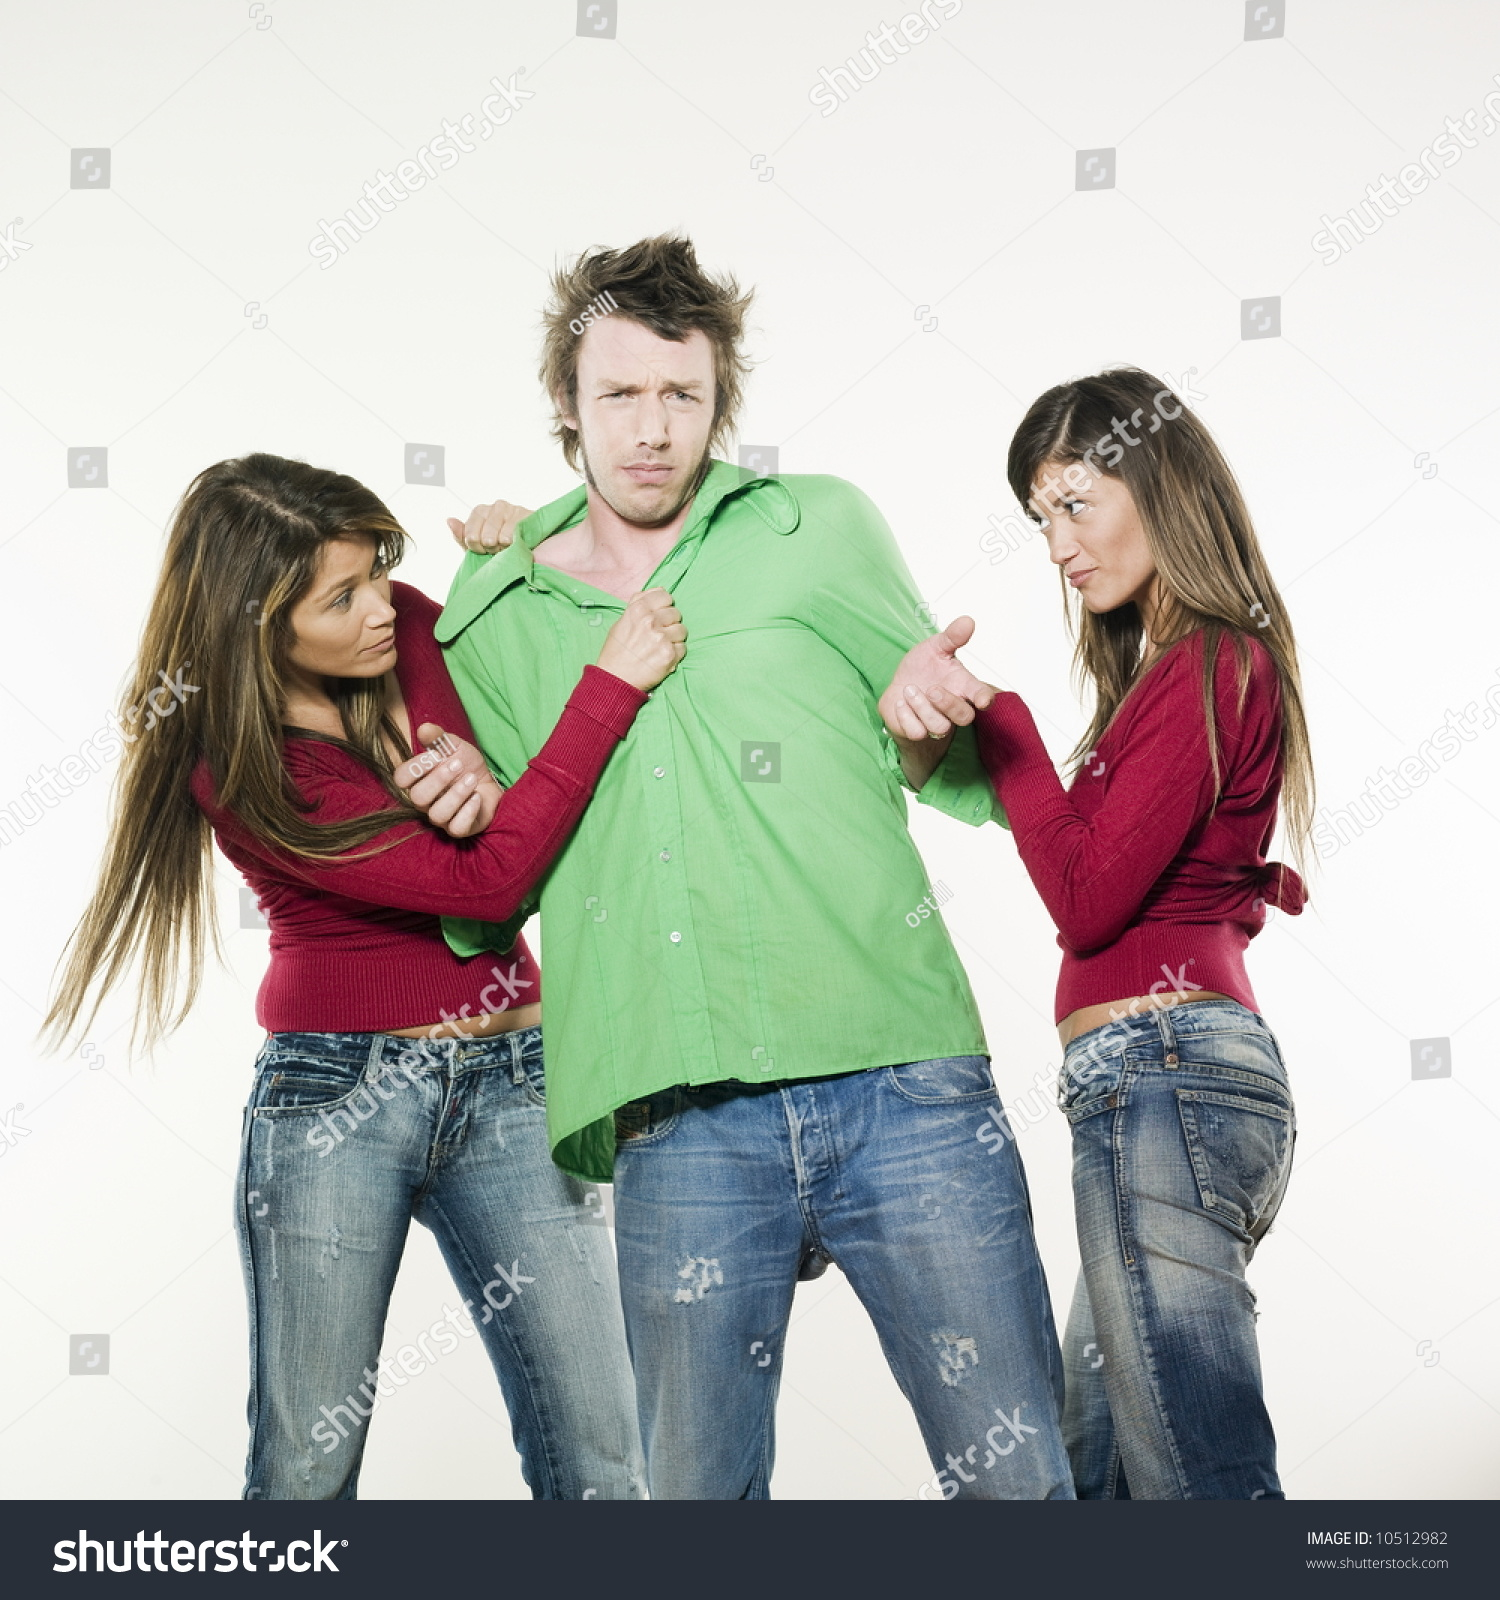 Man dating two sisters